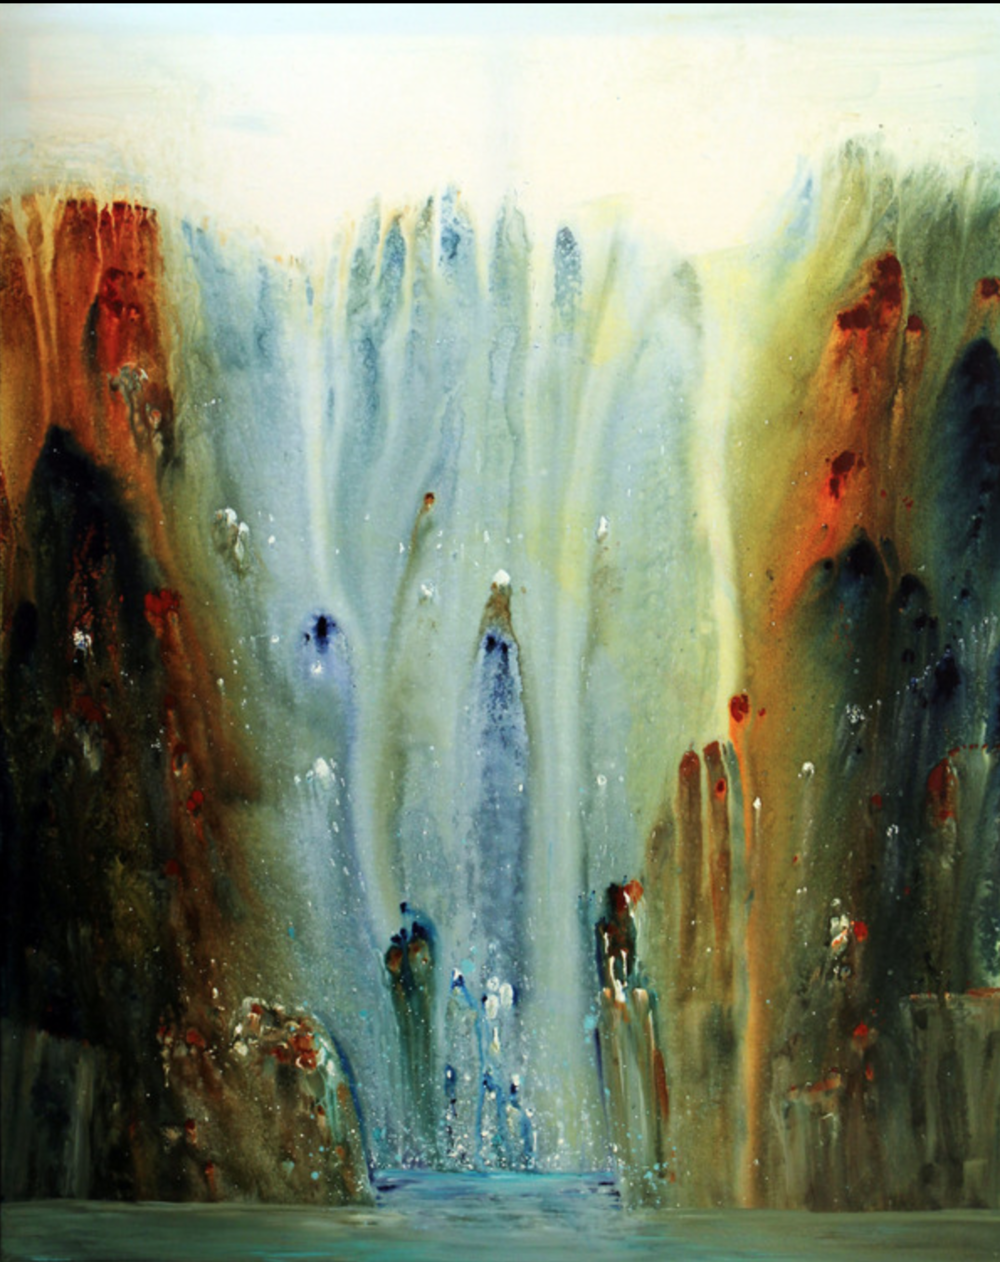 Jane Johnson - http://janejohnsonart.comFluid acrylic on canvas or yupo paper, a synthetic substrate using brushes water and prayers to move the paint